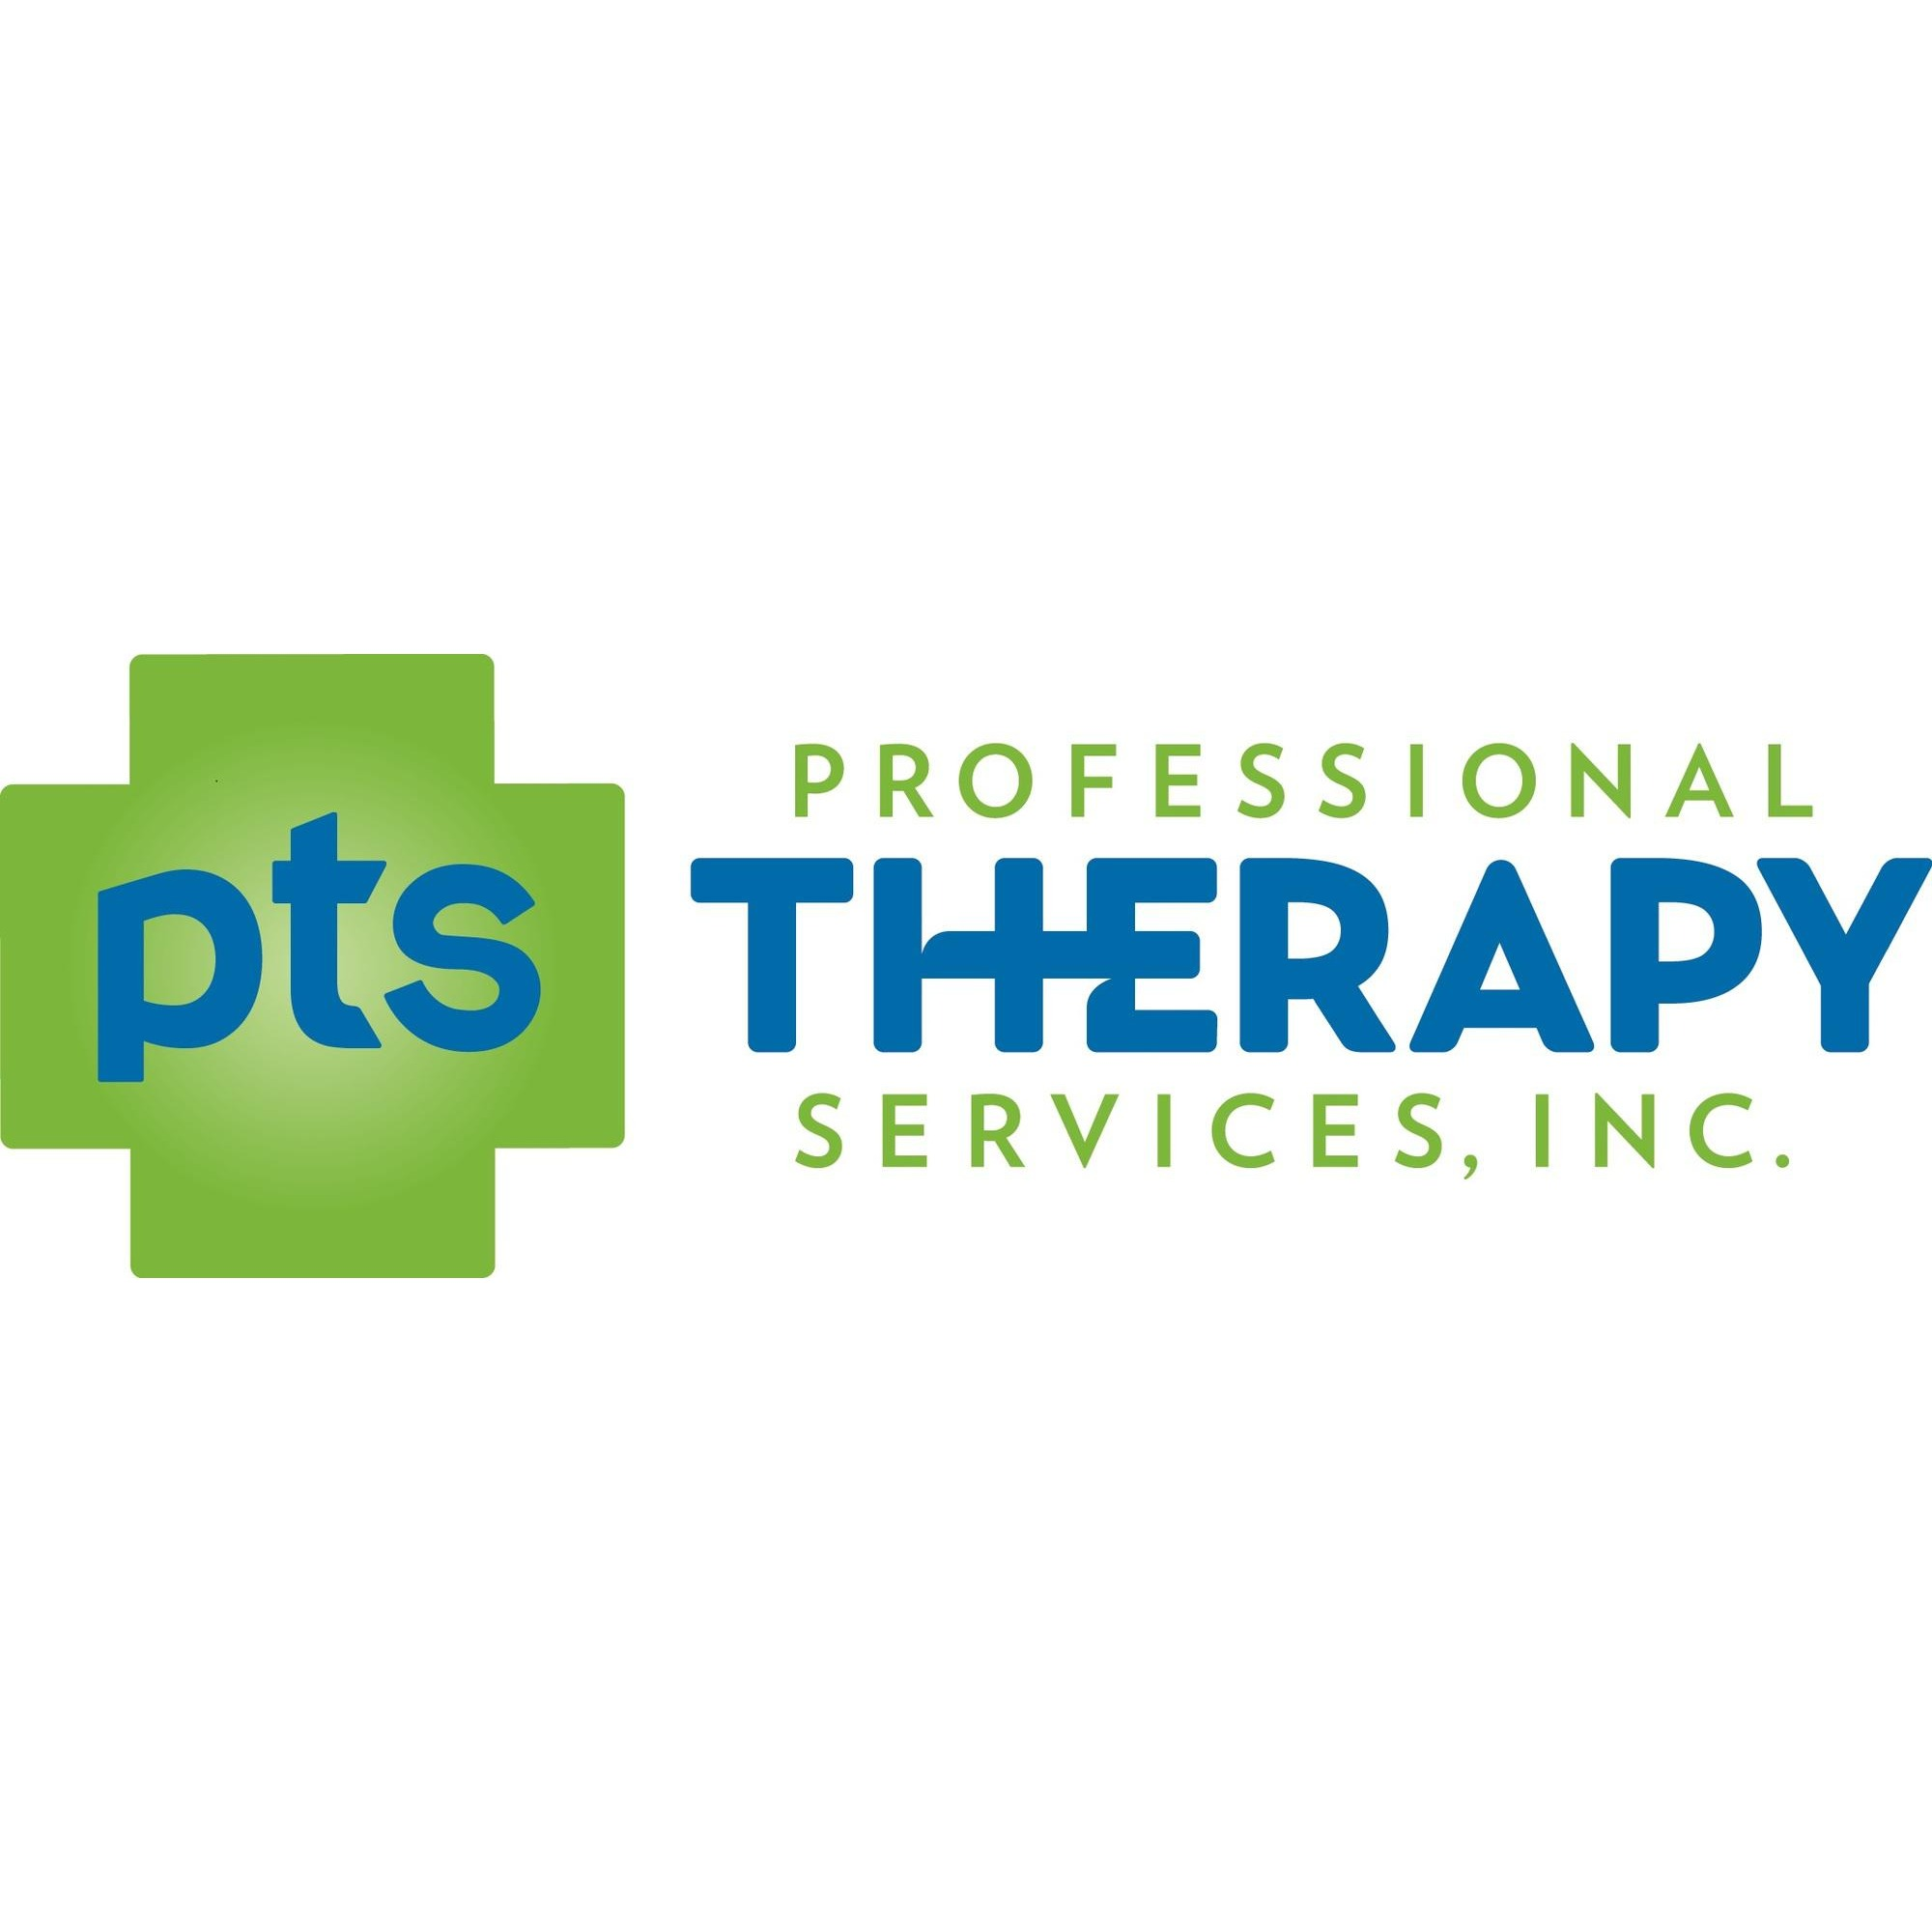 Professional Therapy Services, Inc. - Peoria, IL 61615 - (309)693-9189 | ShowMeLocal.com